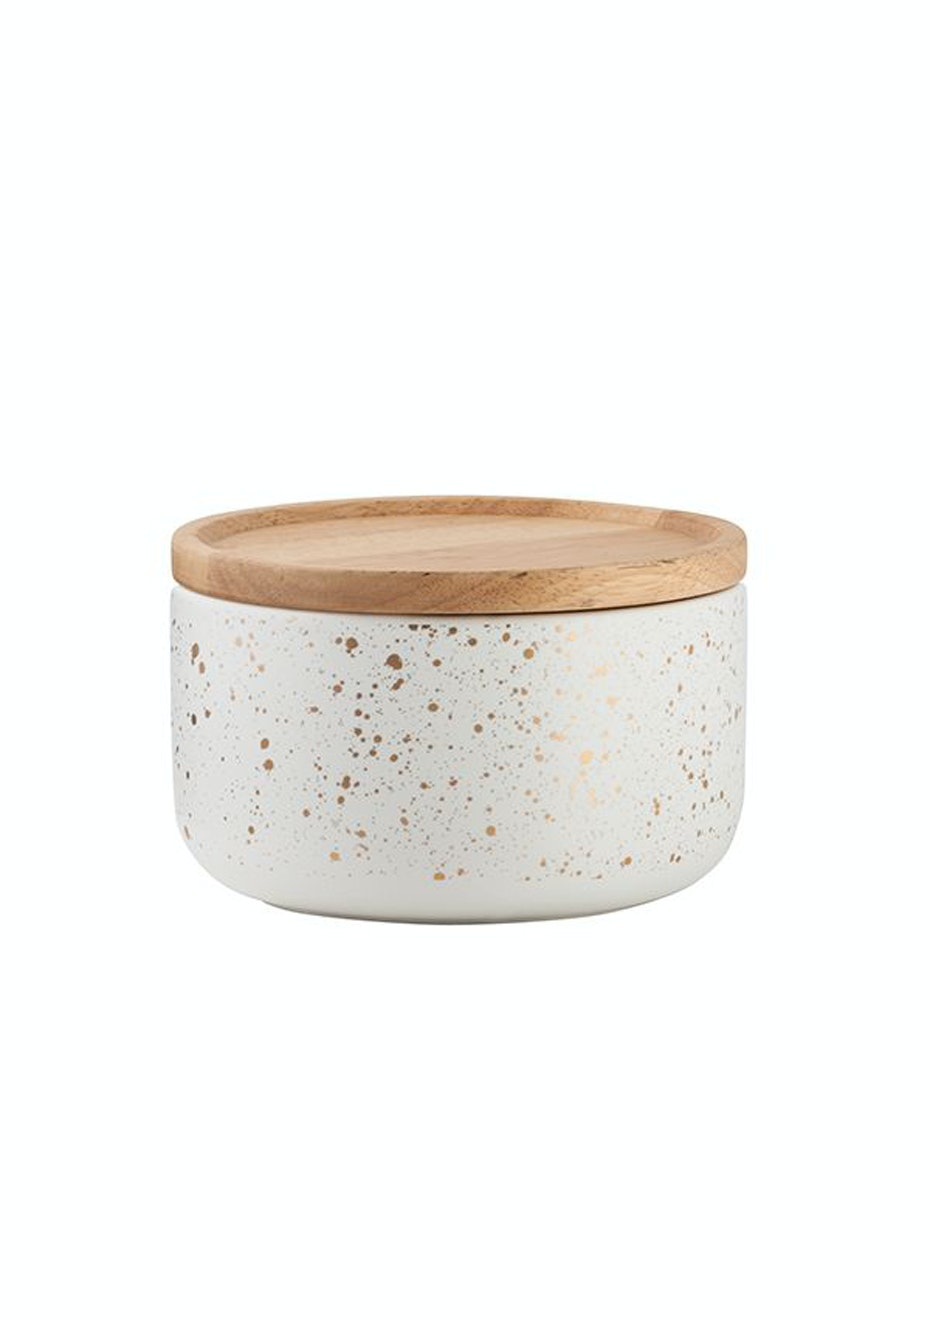 General Eclectic - Wide Canister GoldGrey Spot